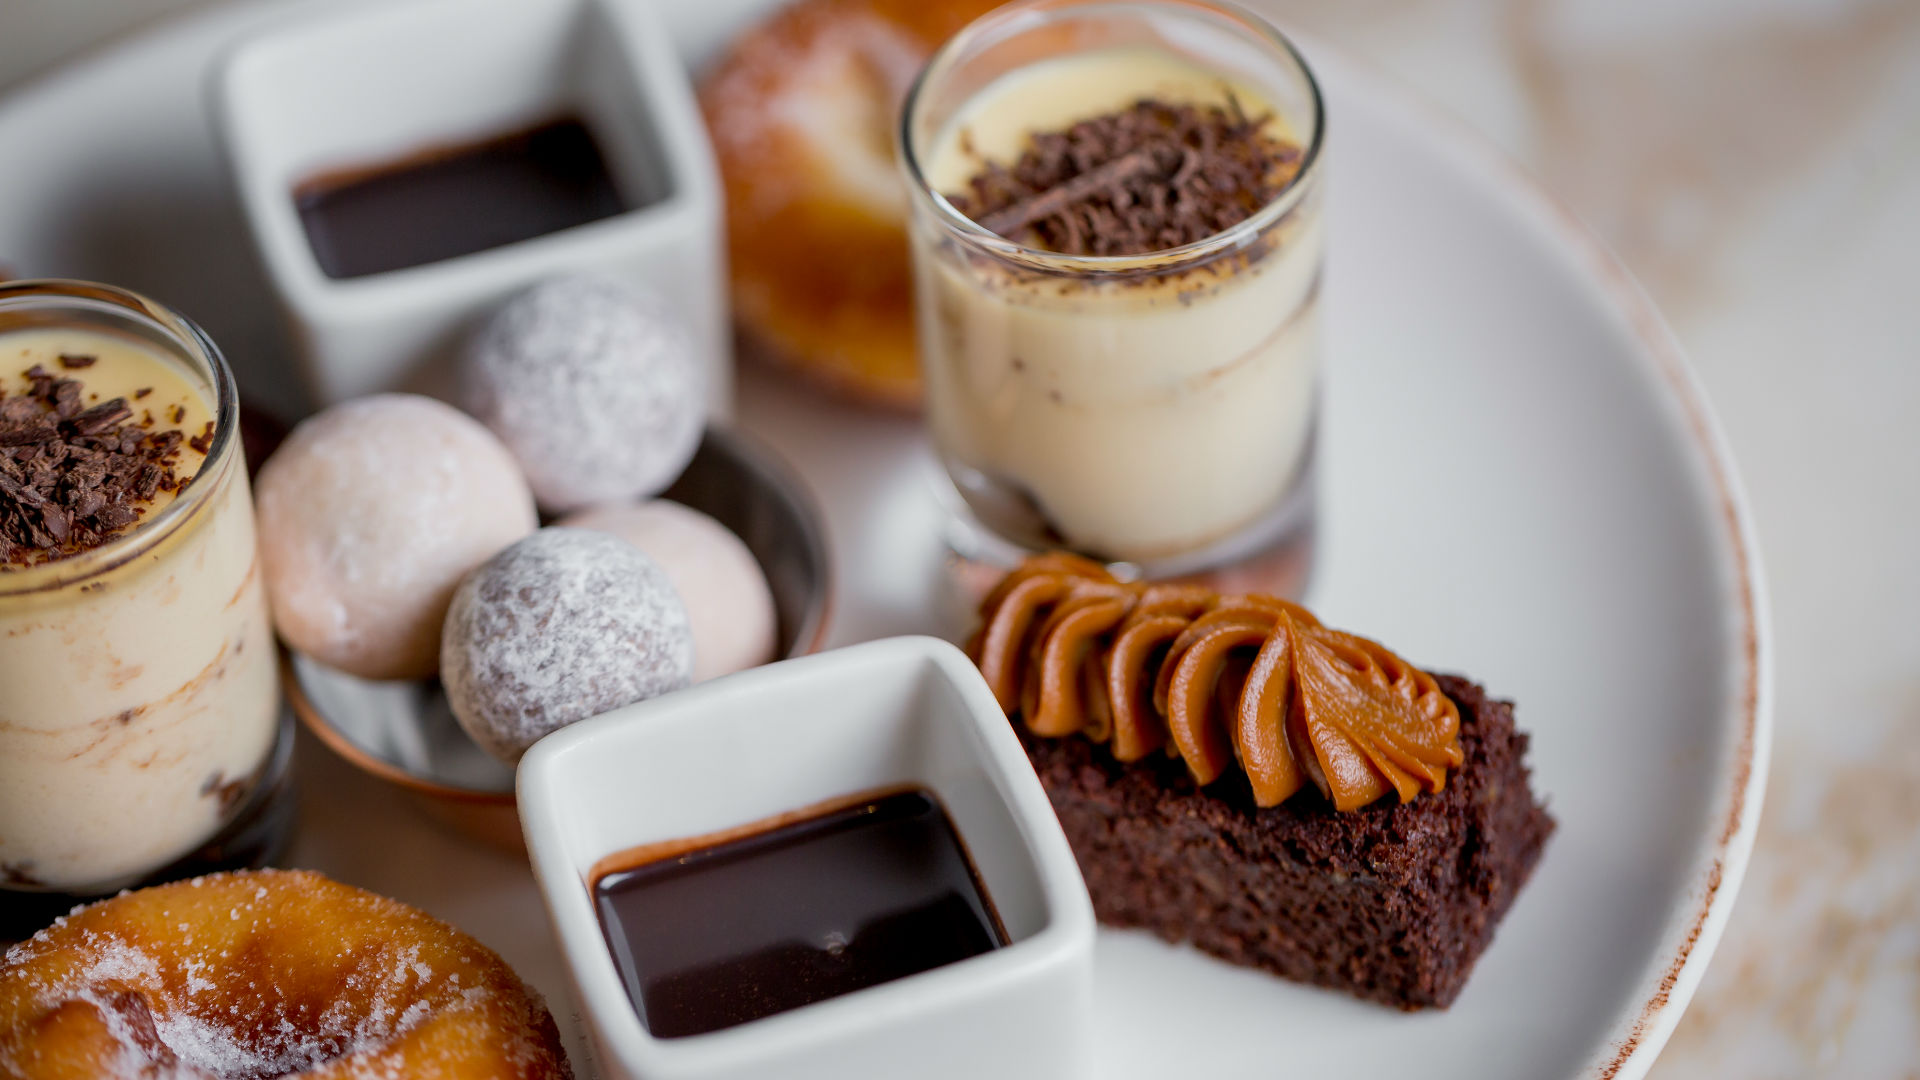 Chocolate cakes and other sweet treats in May Fair Kitchen's Charbonnel et Walker afternoon tea. Image courtesy of May Fair Kitchen. Photo: Justin de Souza